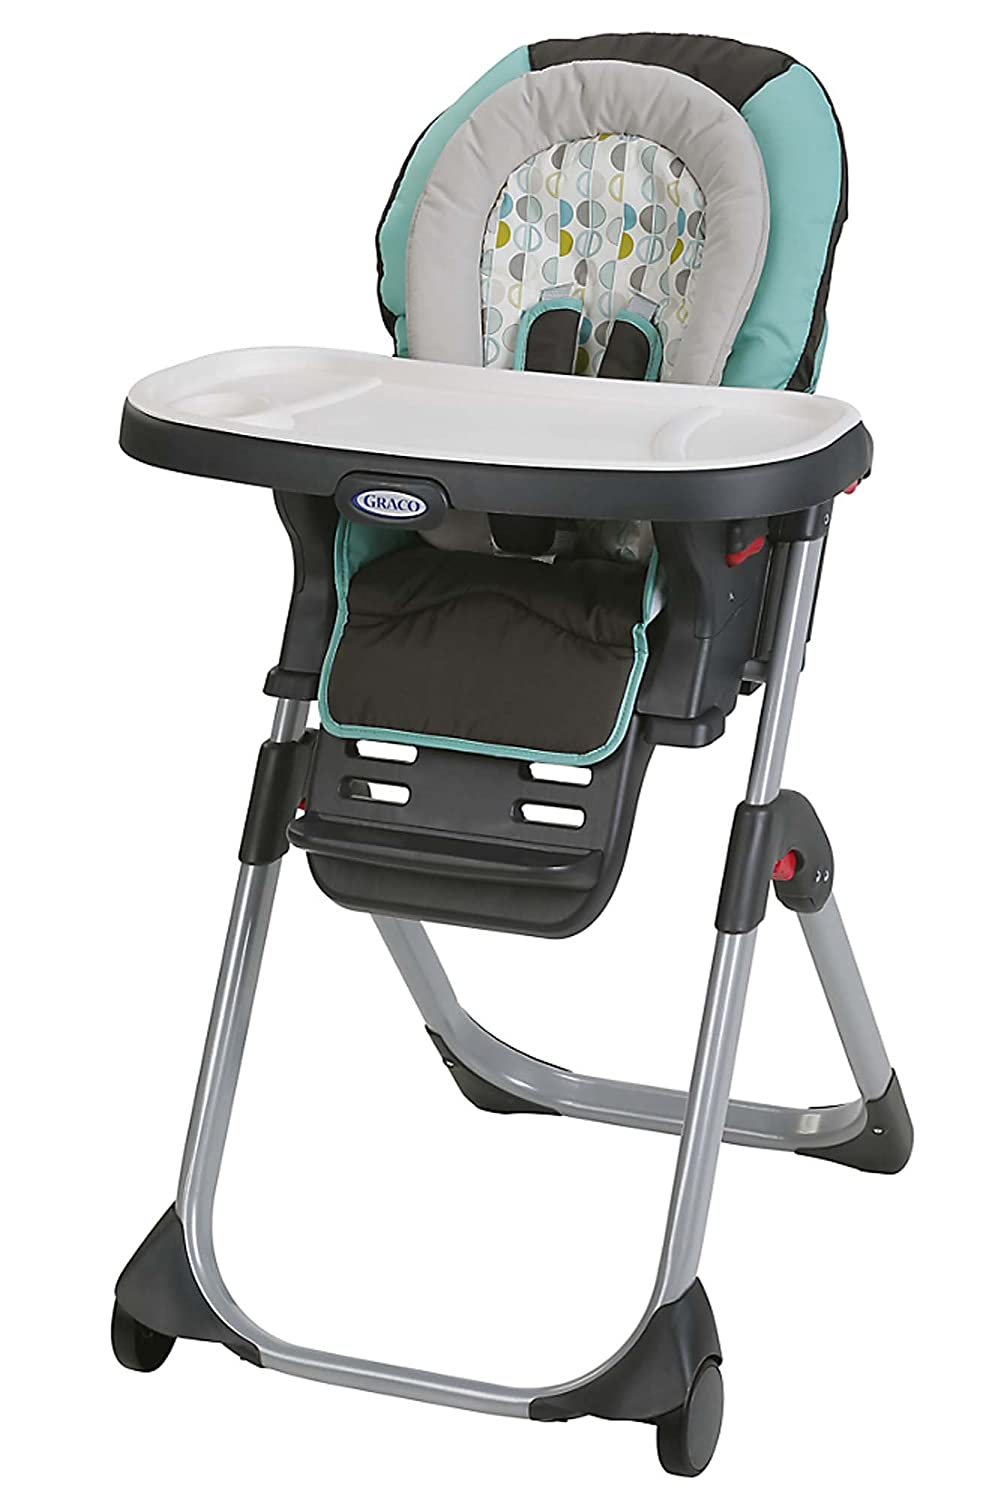 How To Find The Best High Chairs For Babies You Should Know 9